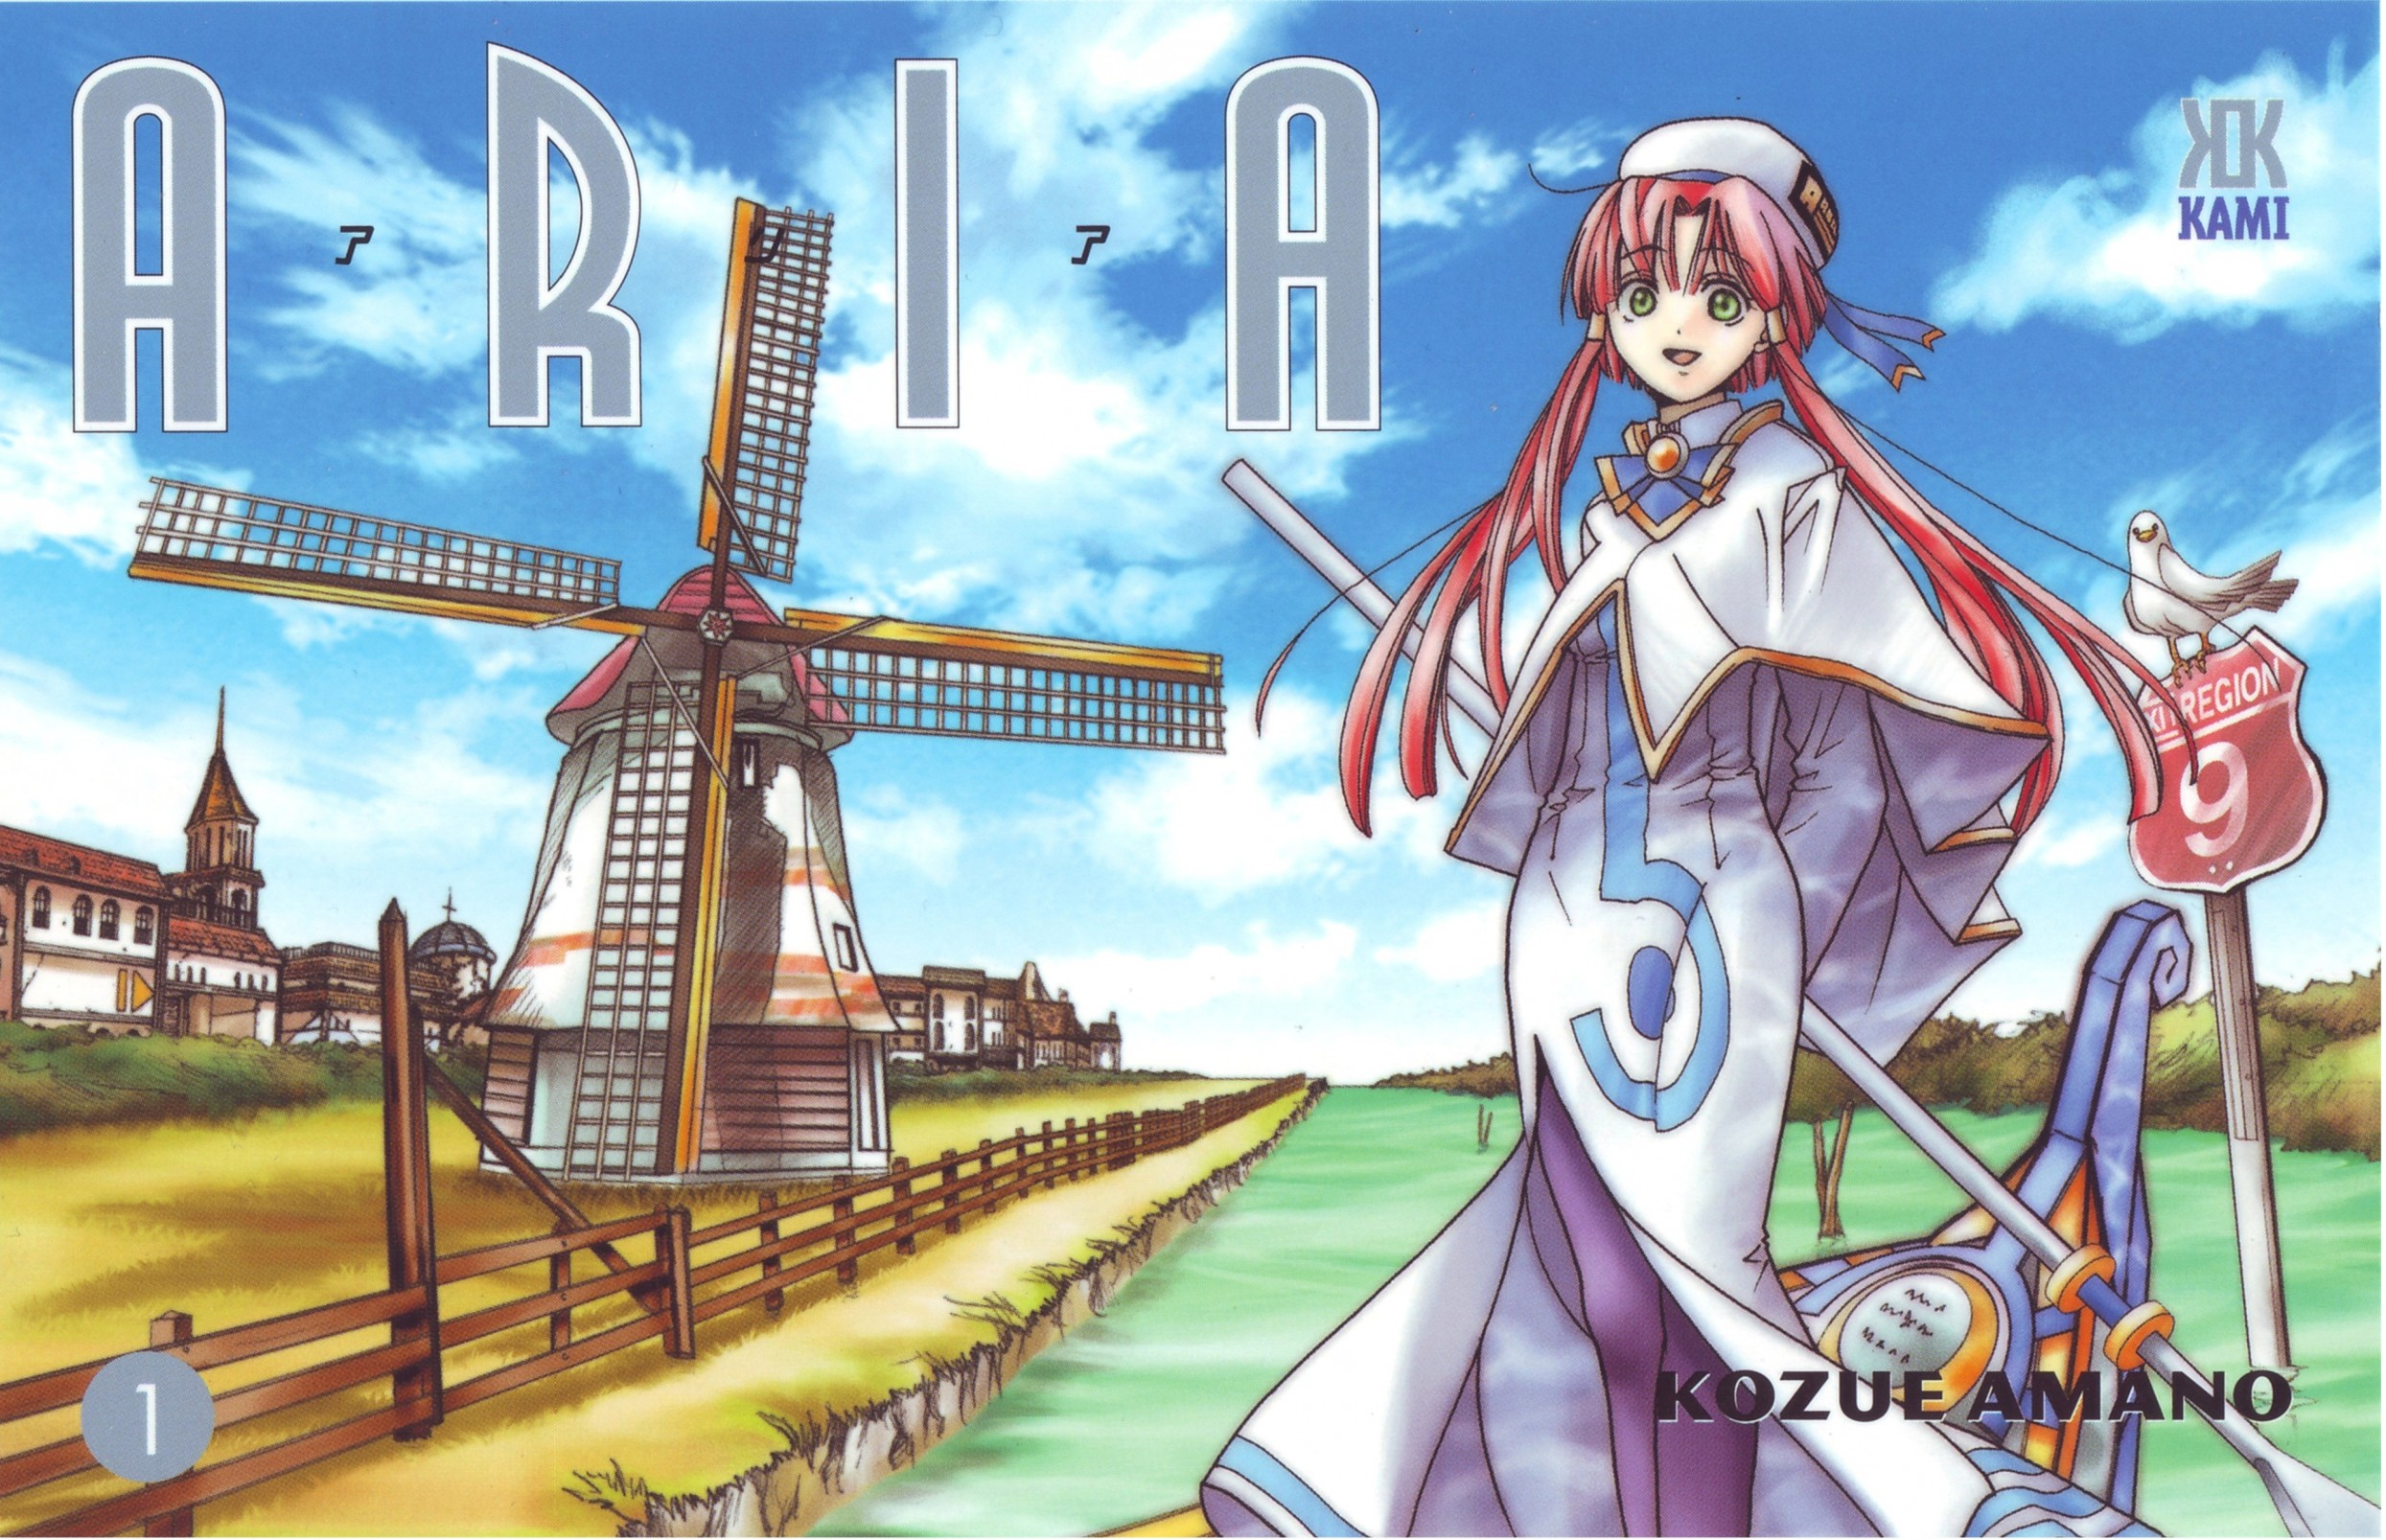 Aria Series Hd Wallpaper 29860 Zerochan Anime Image Board